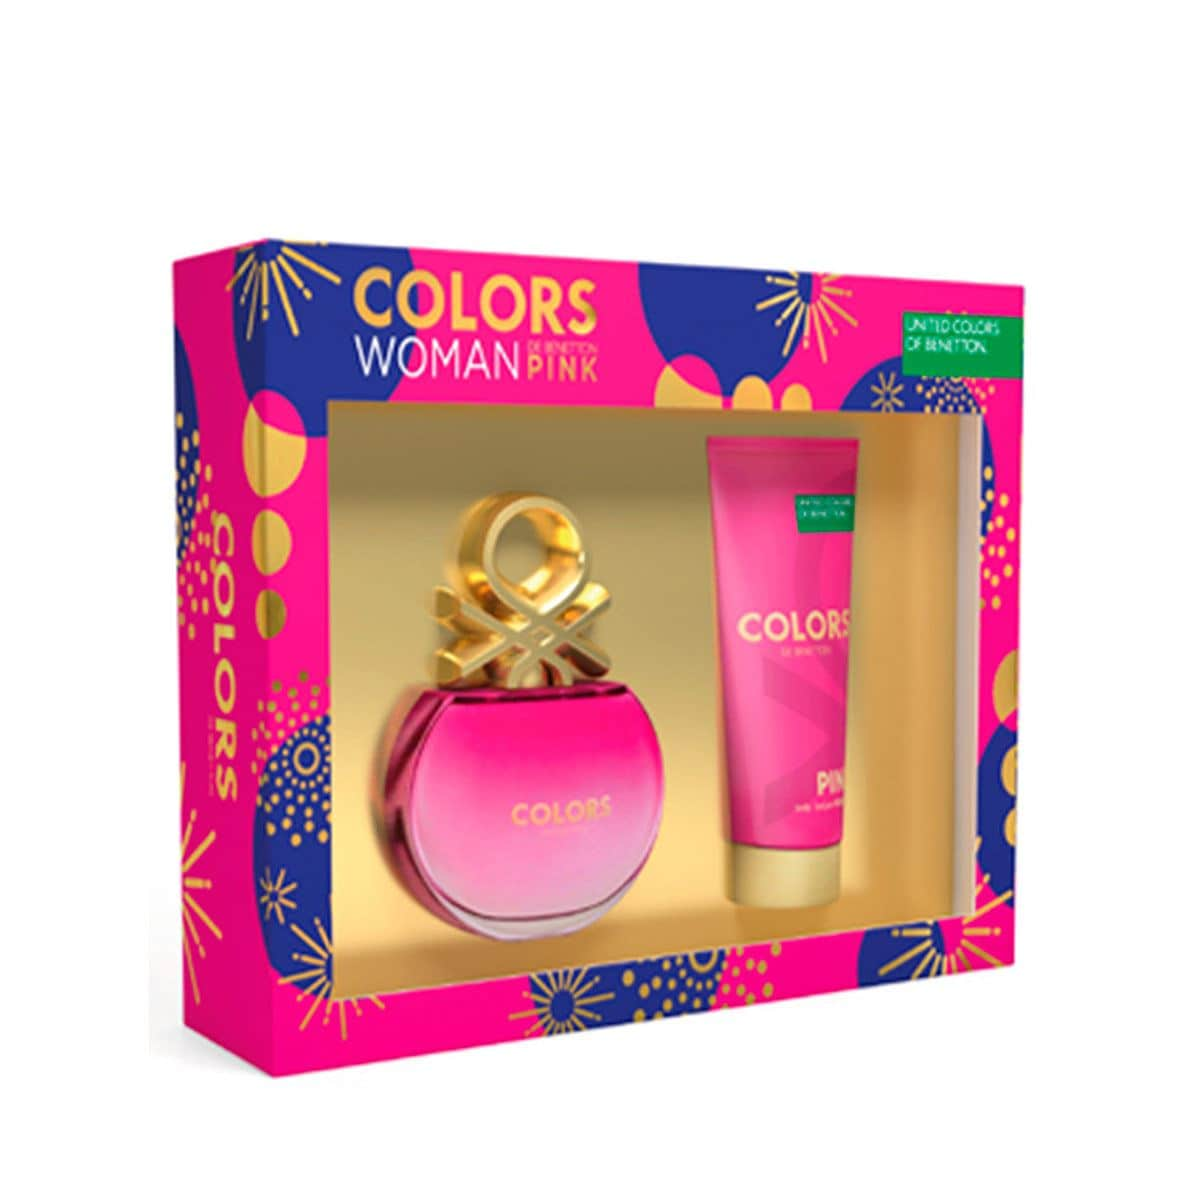 Set para dama, Benetton, Colors Pink, EDT 80 ml+ body lotion 75 ml